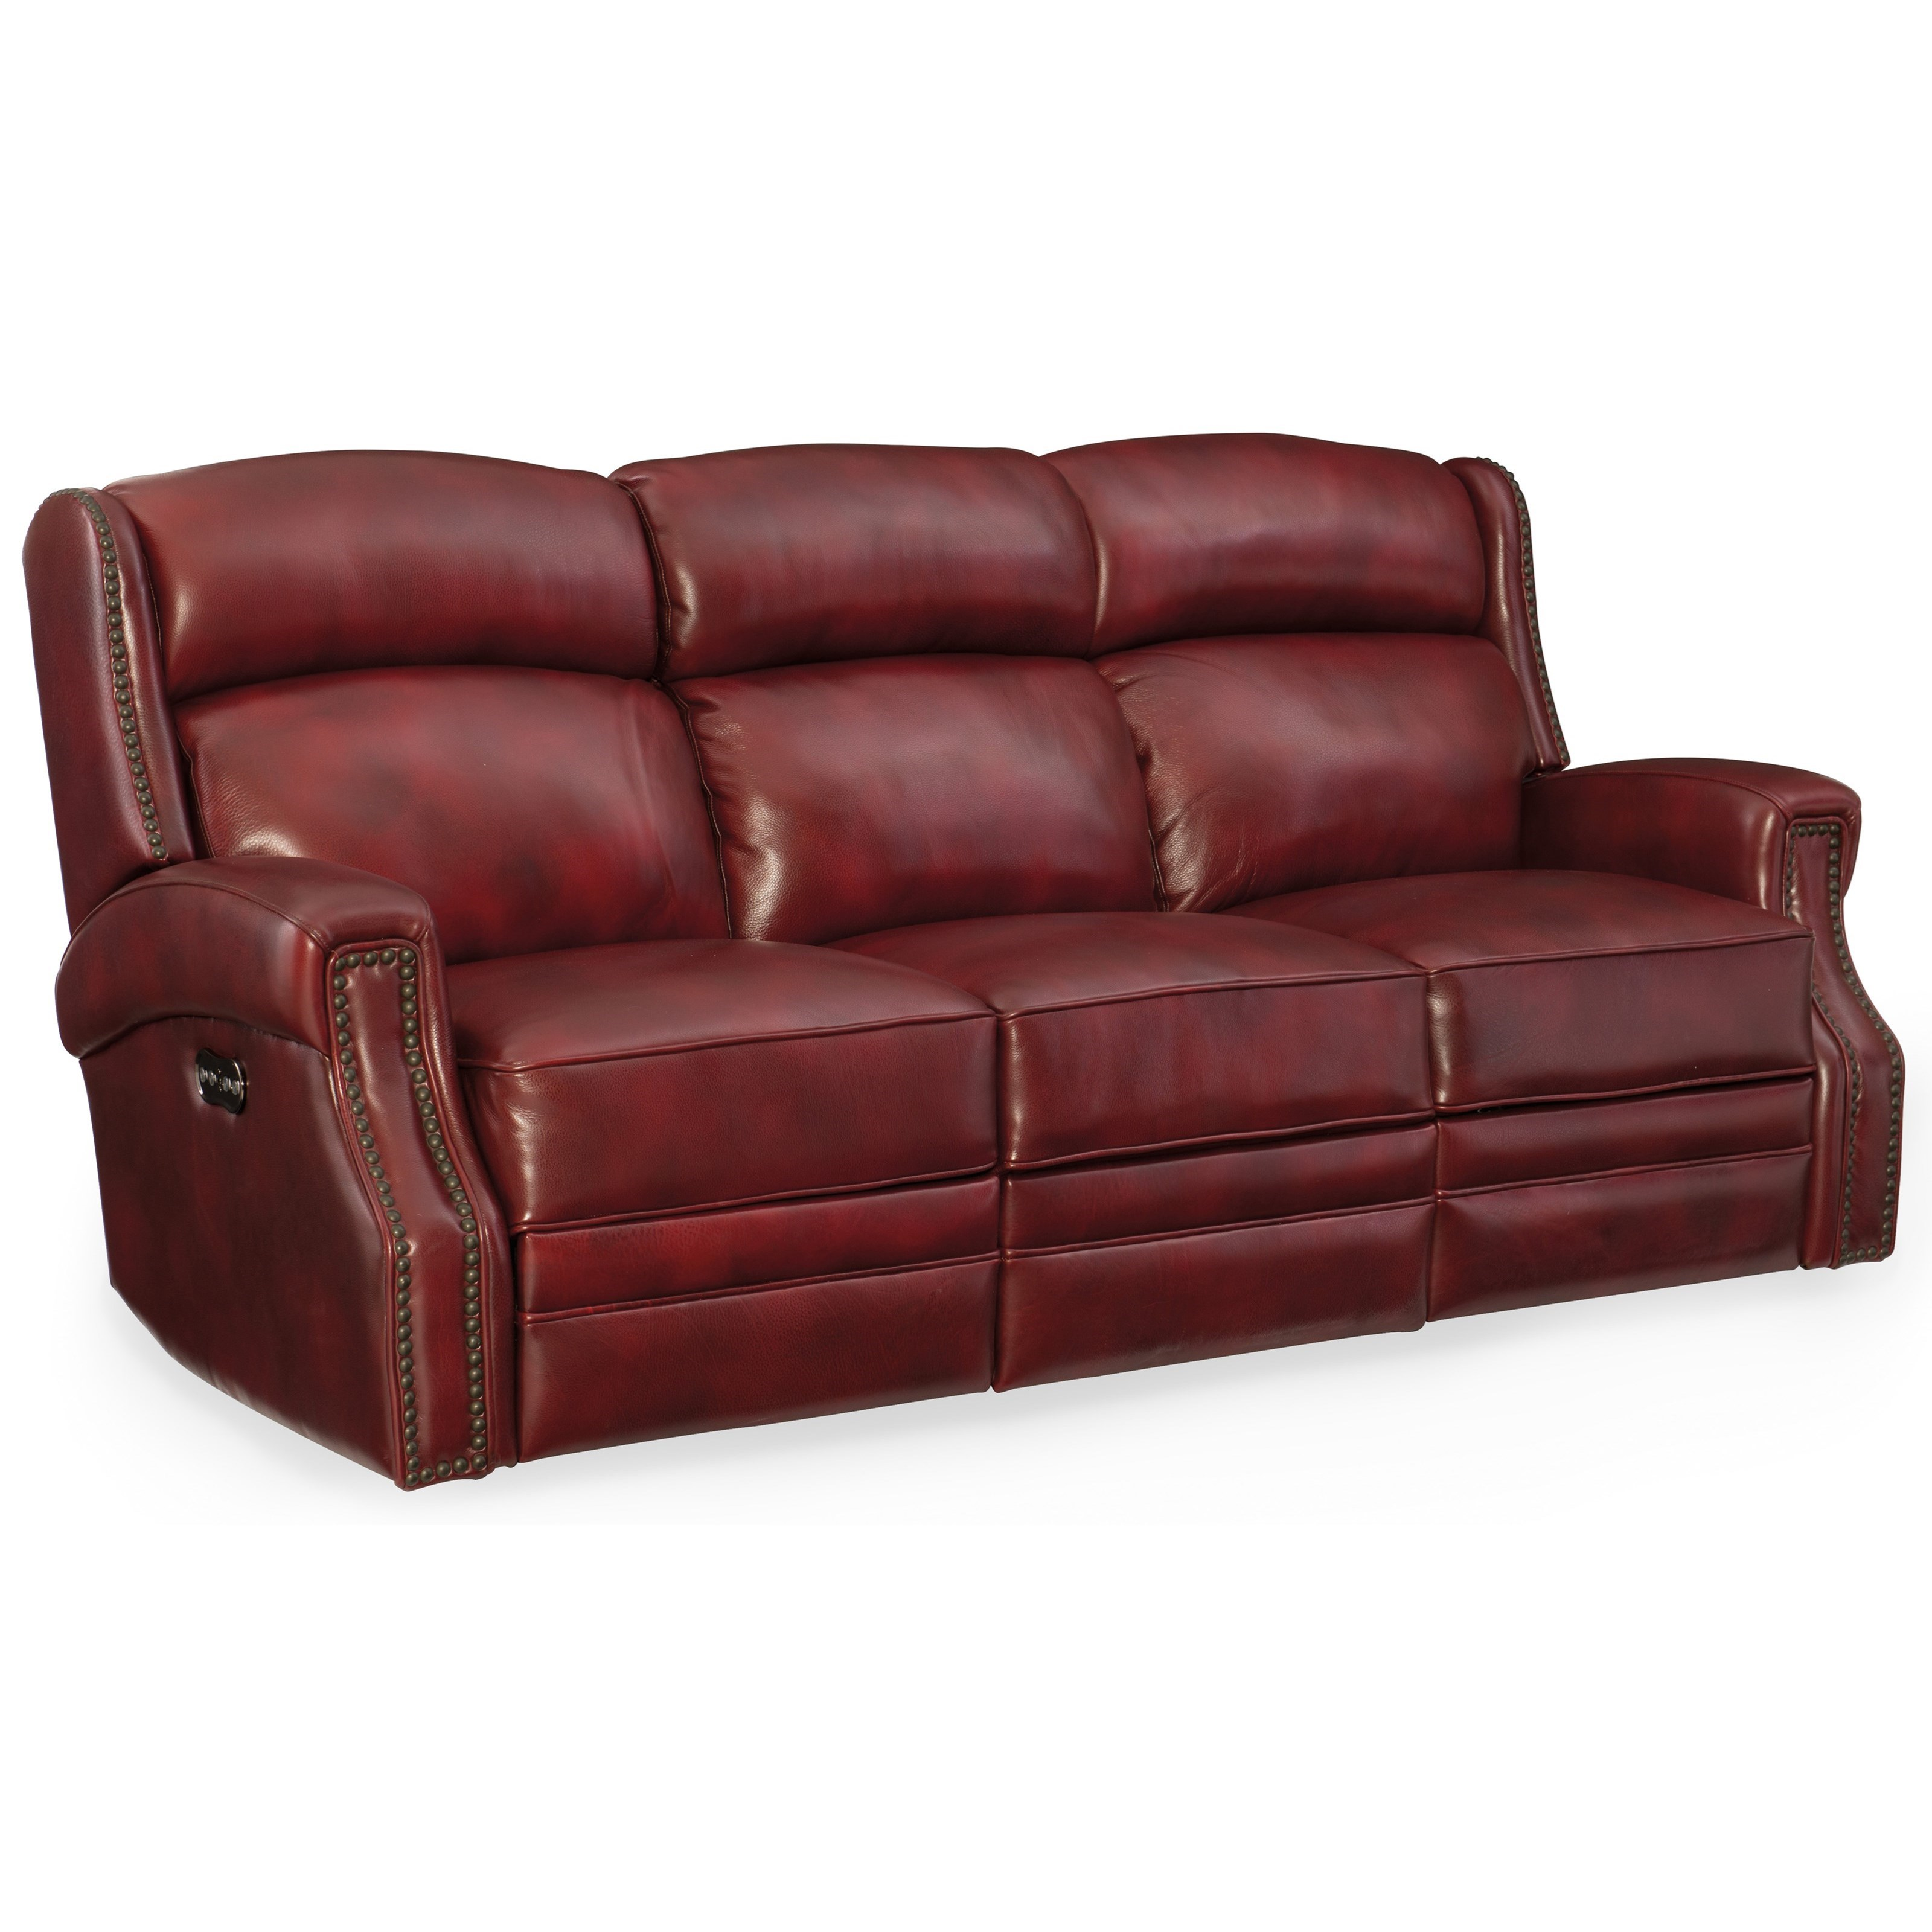 Carlisle Power Motion Sofa with Power Headrest by Hooker Furniture at Baer's Furniture